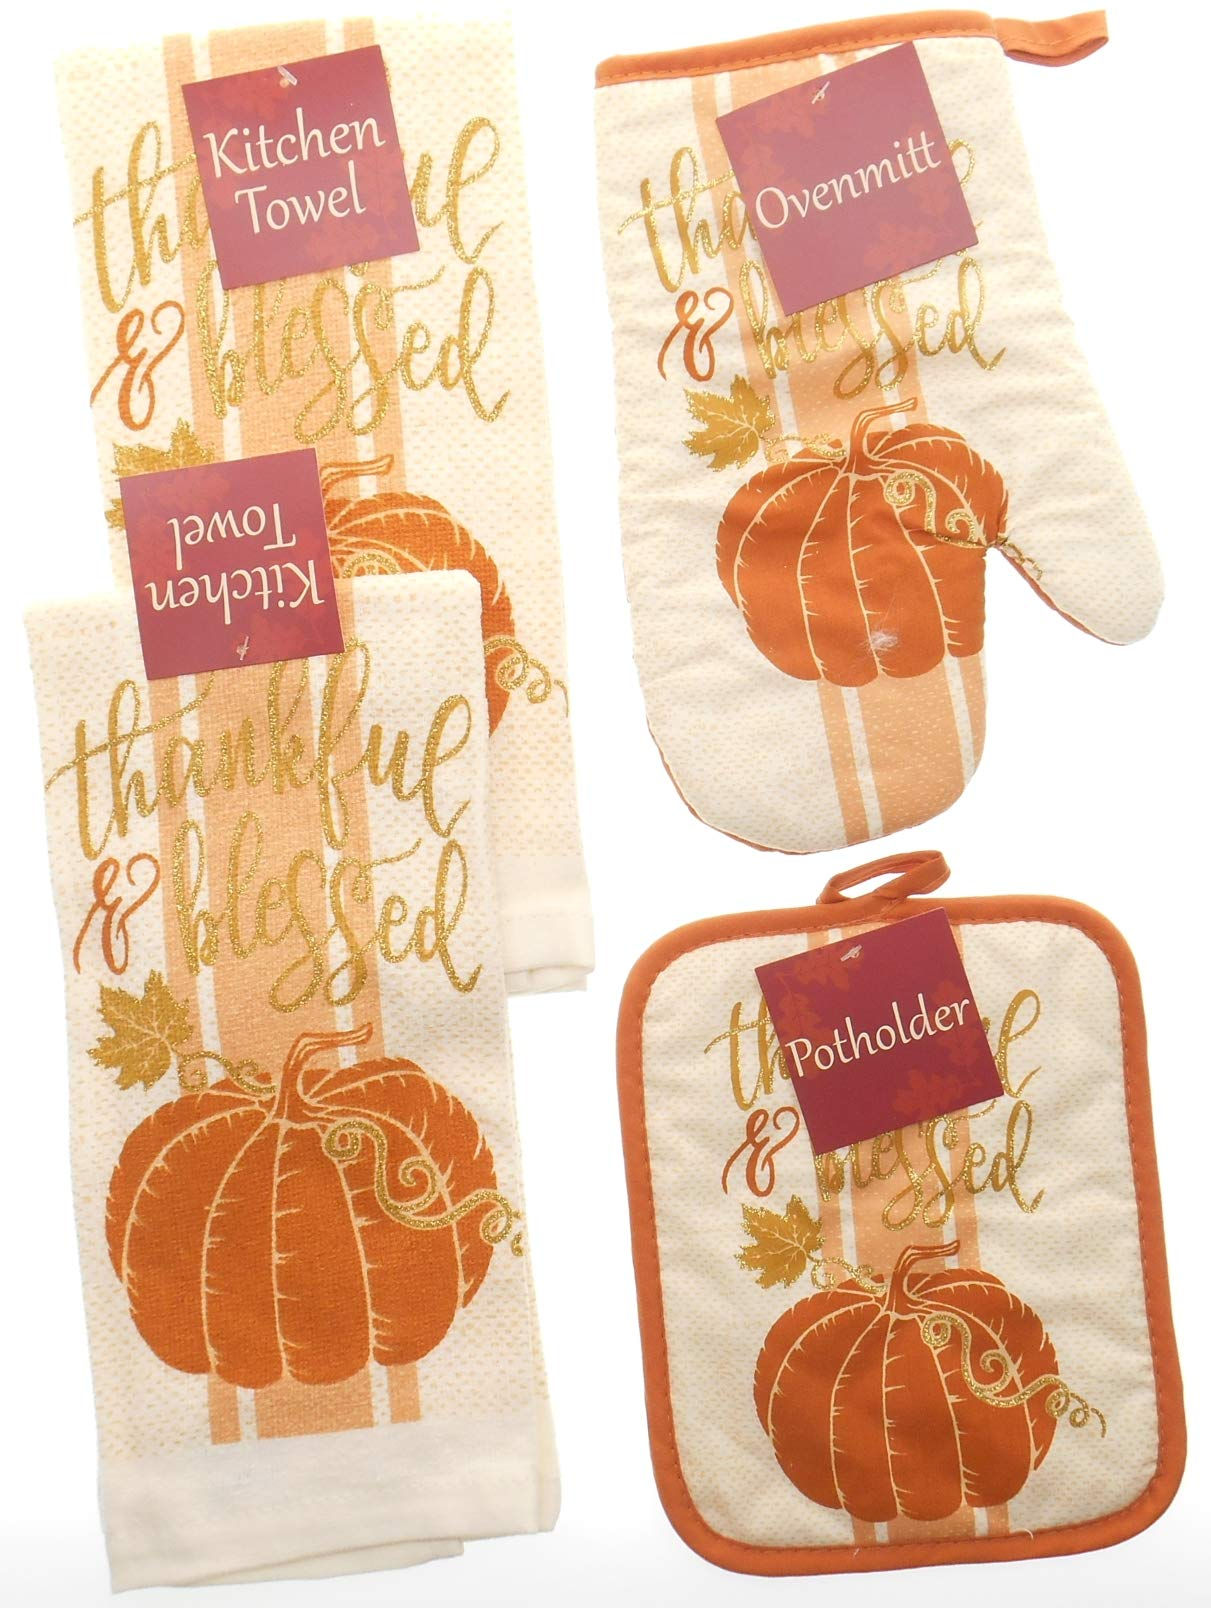 Thankful and Blessed Soft Orange Kitchen Towel Set Accented with Gold Glitter. Bundle of 4 Includes 2 Towels, 1 Oven Mitt and 1 Pot Holder. Fall Kitchen Towels Set.